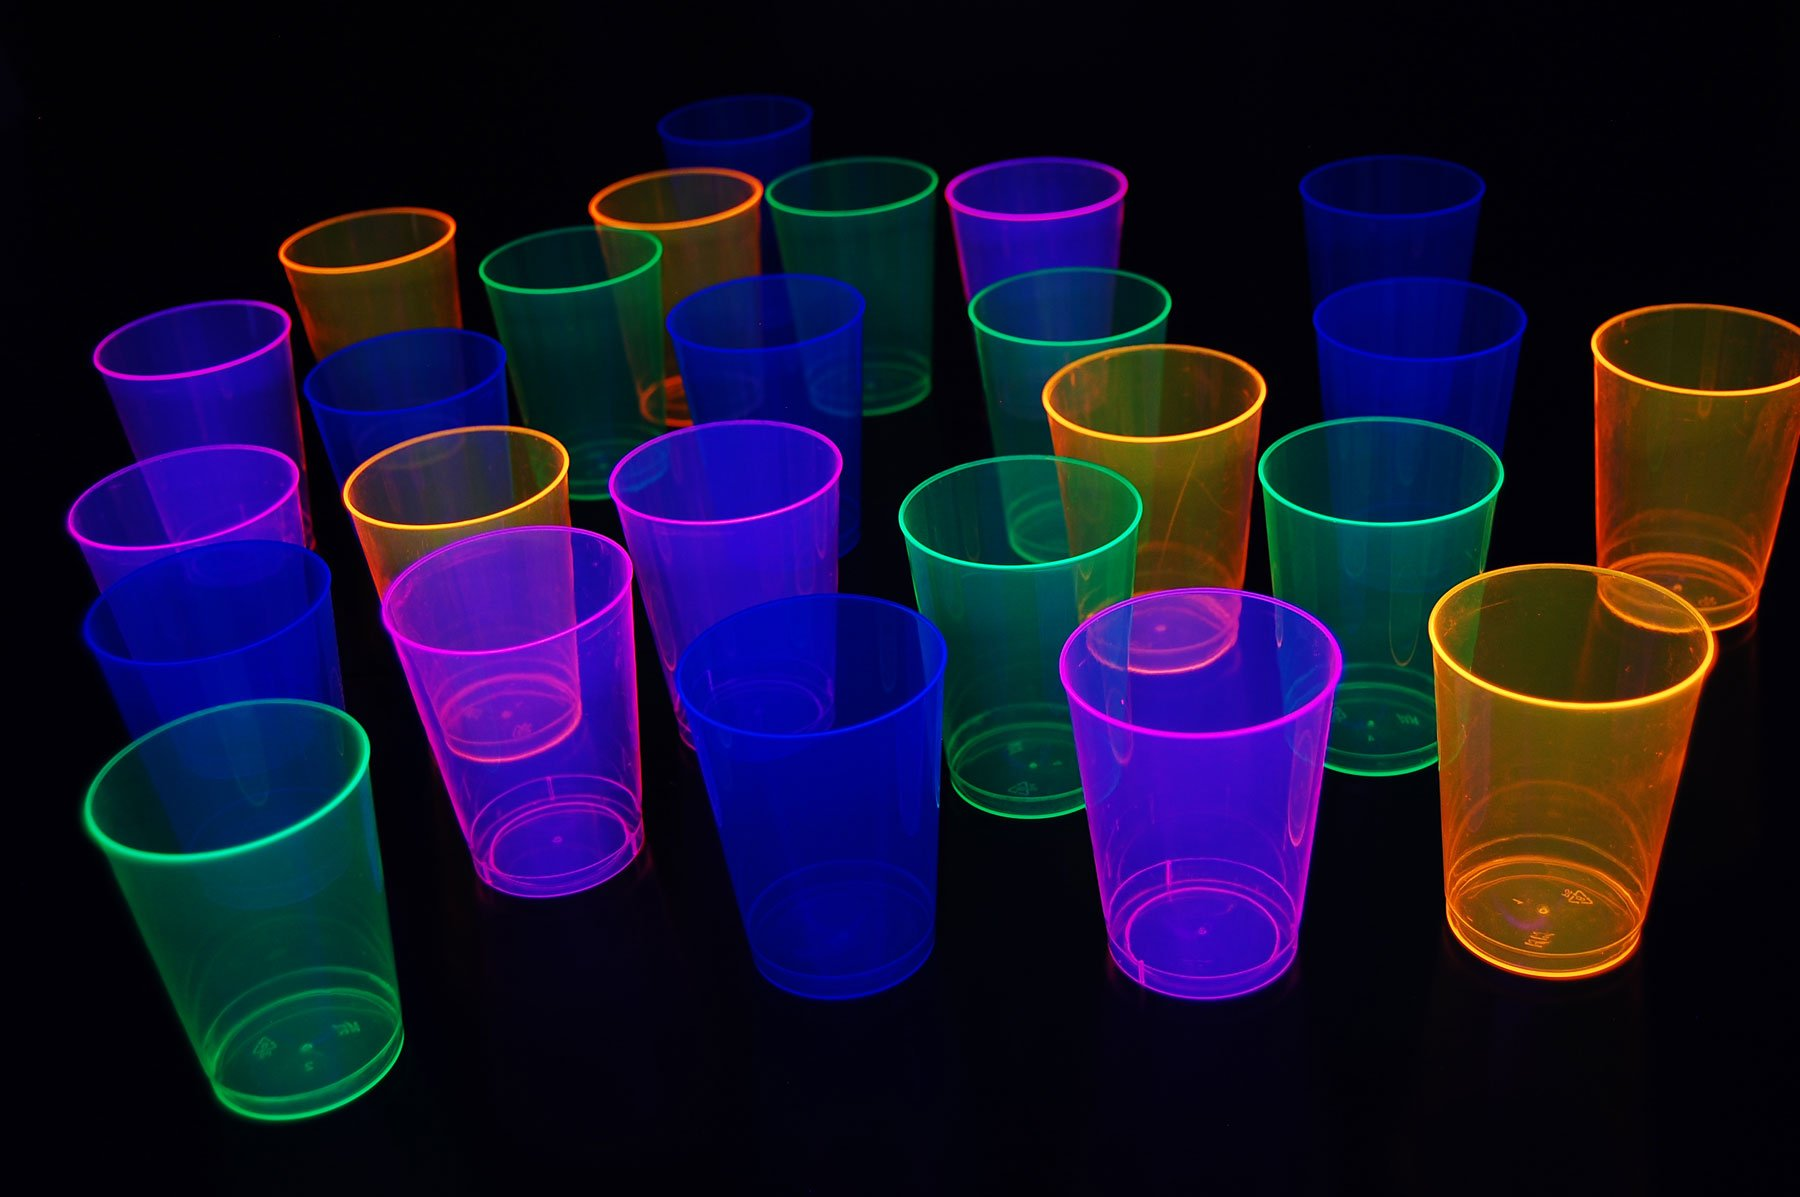 100ct Blacklight Reactive 10oz Party Cups + 5 Blacklight Balloons (Neon Assorted)